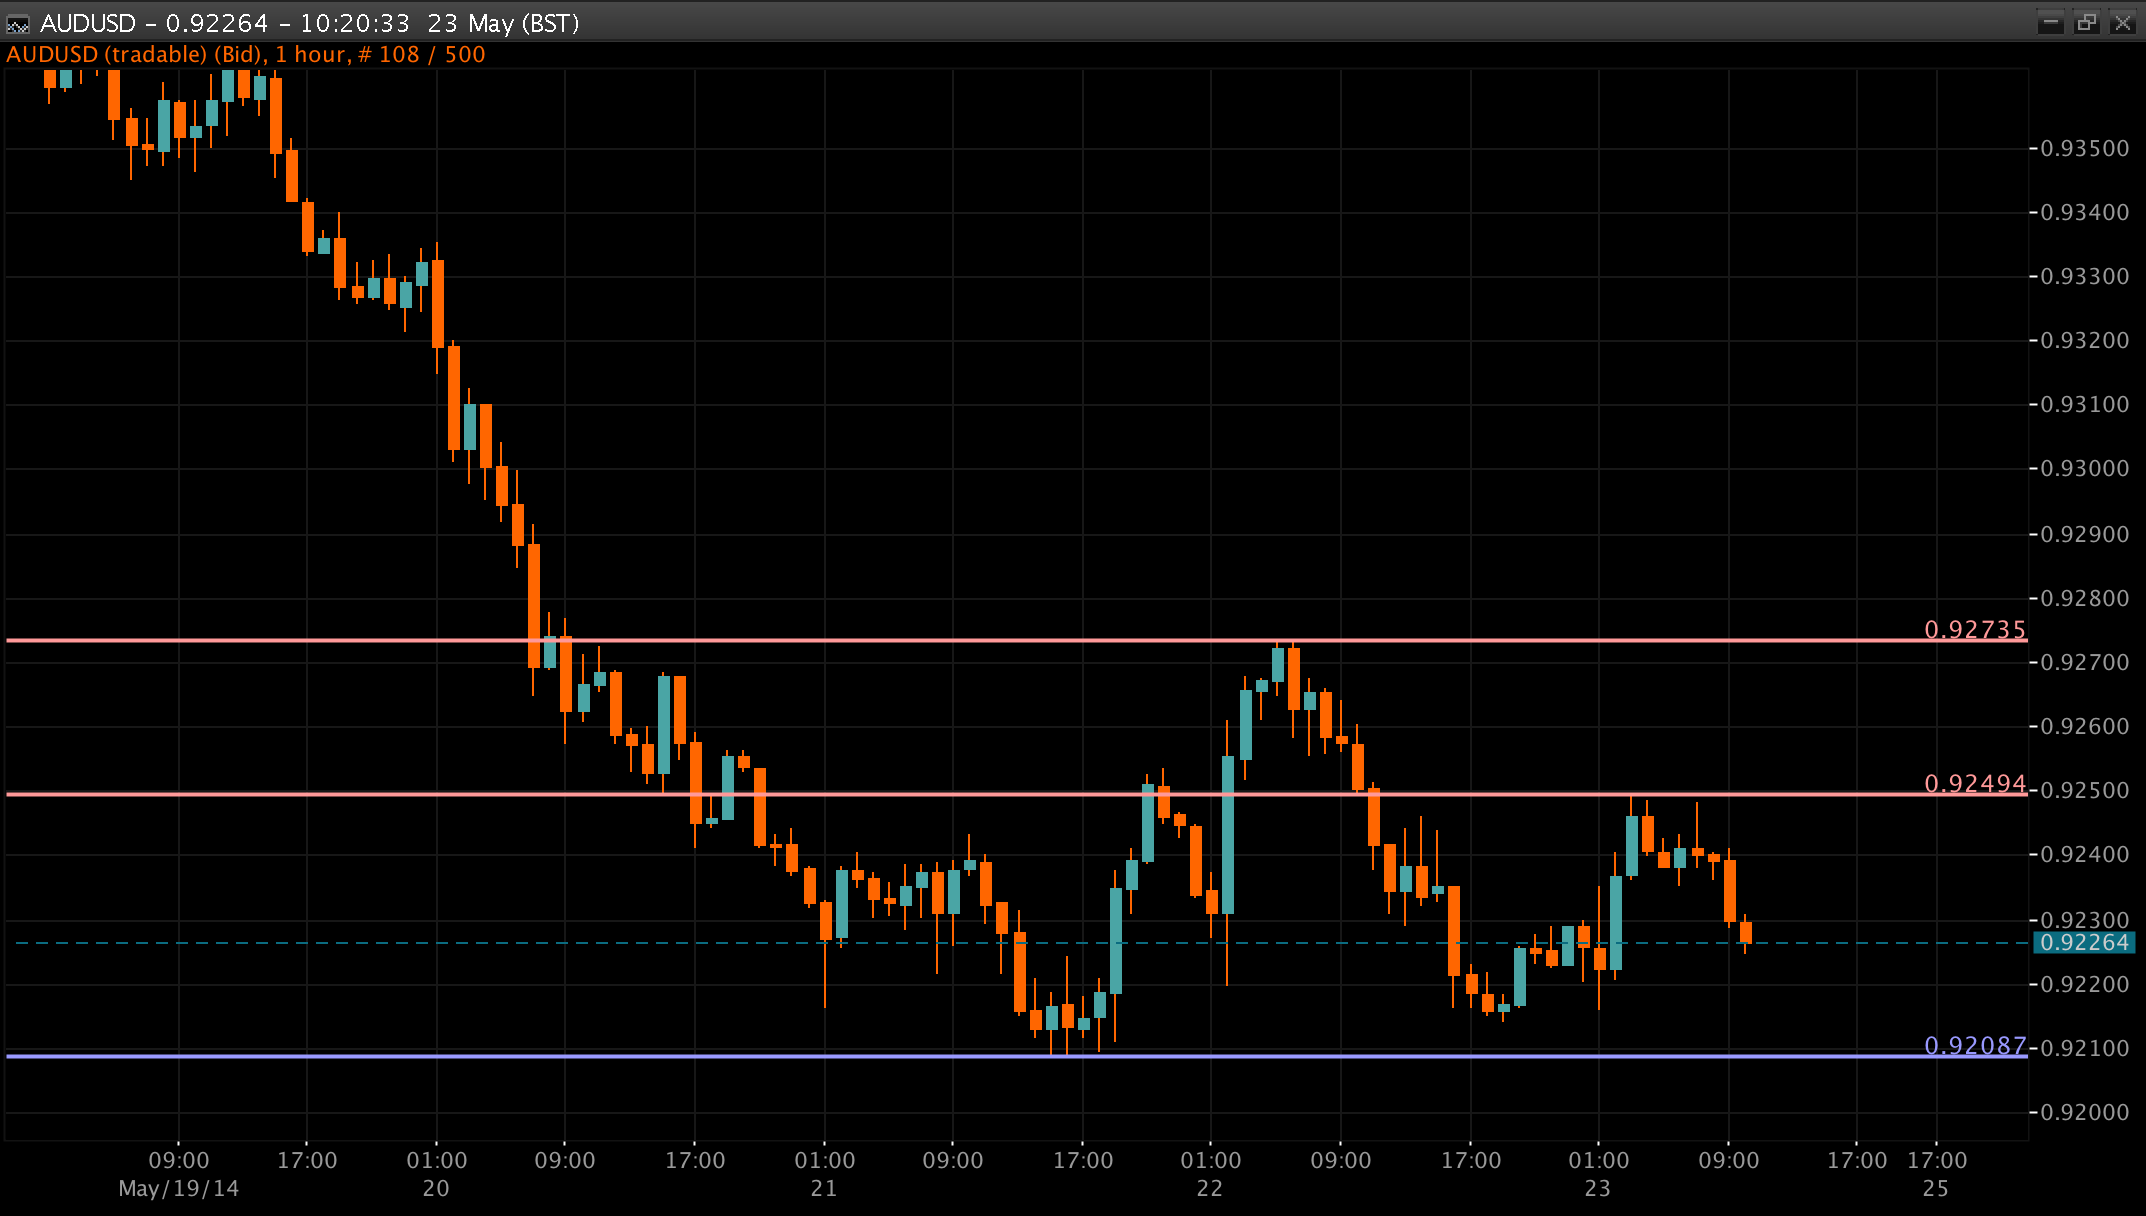 AUD/USD Chart 23 May 2014